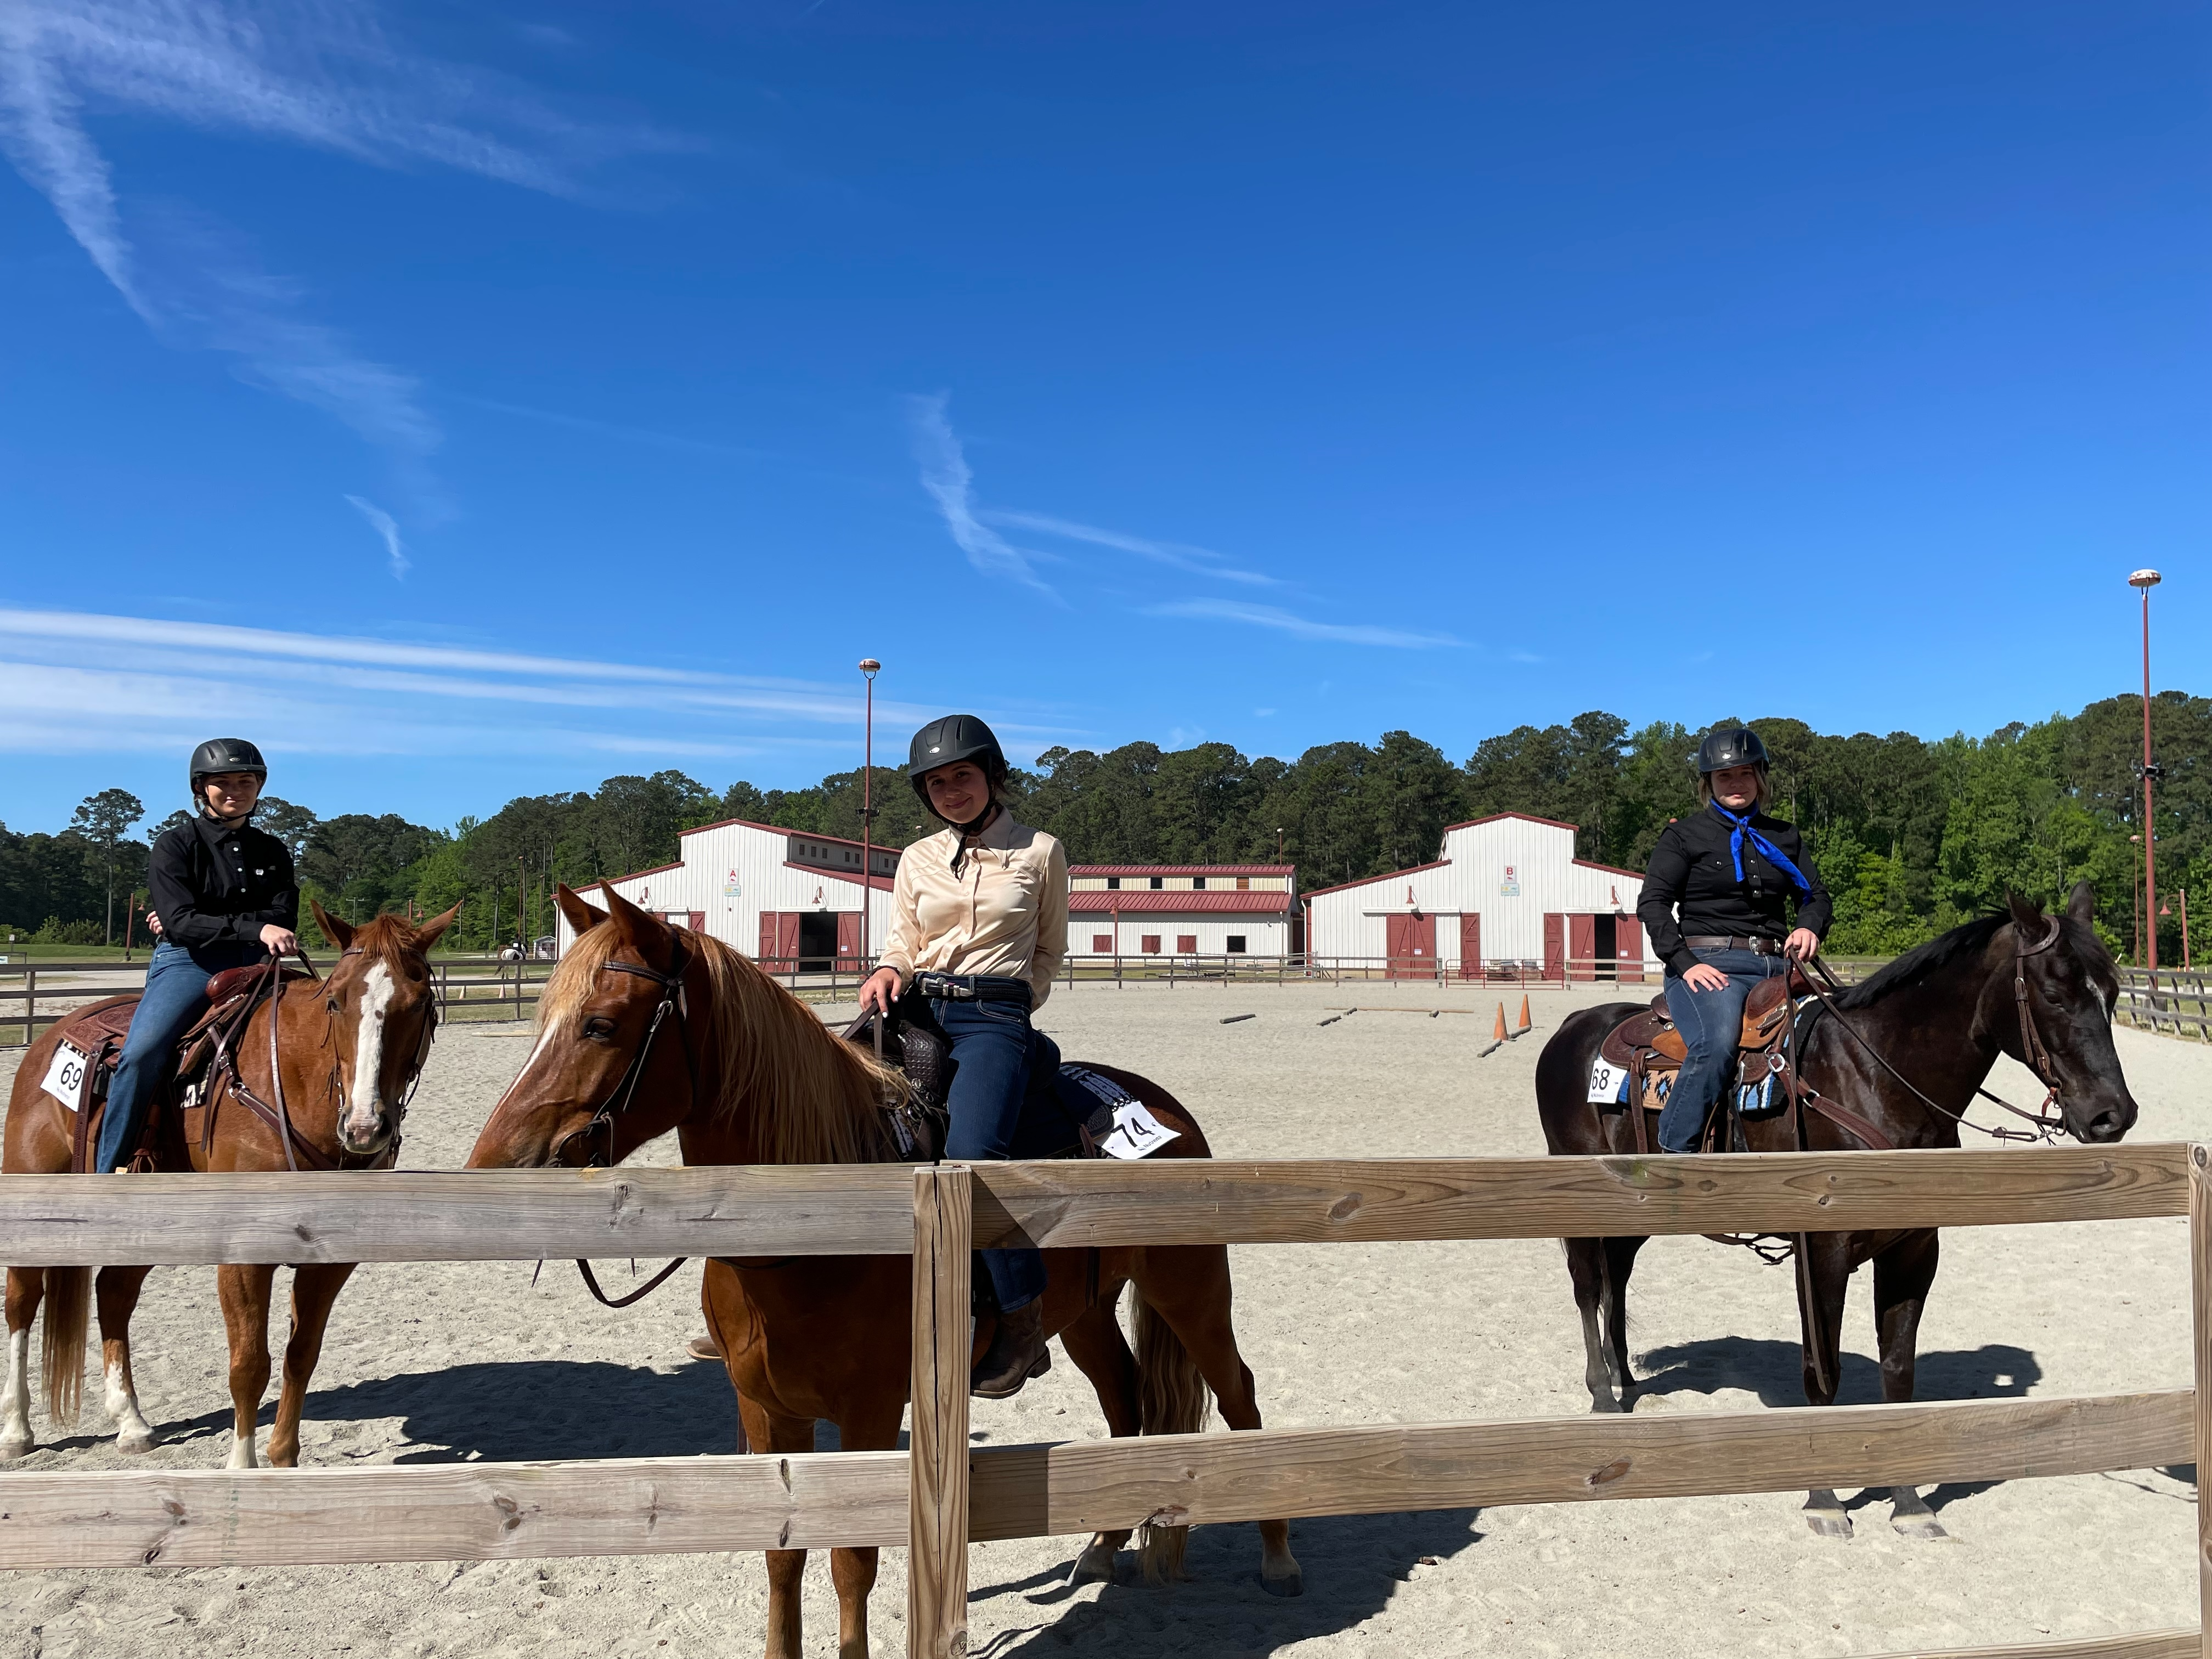 Riders and Horses